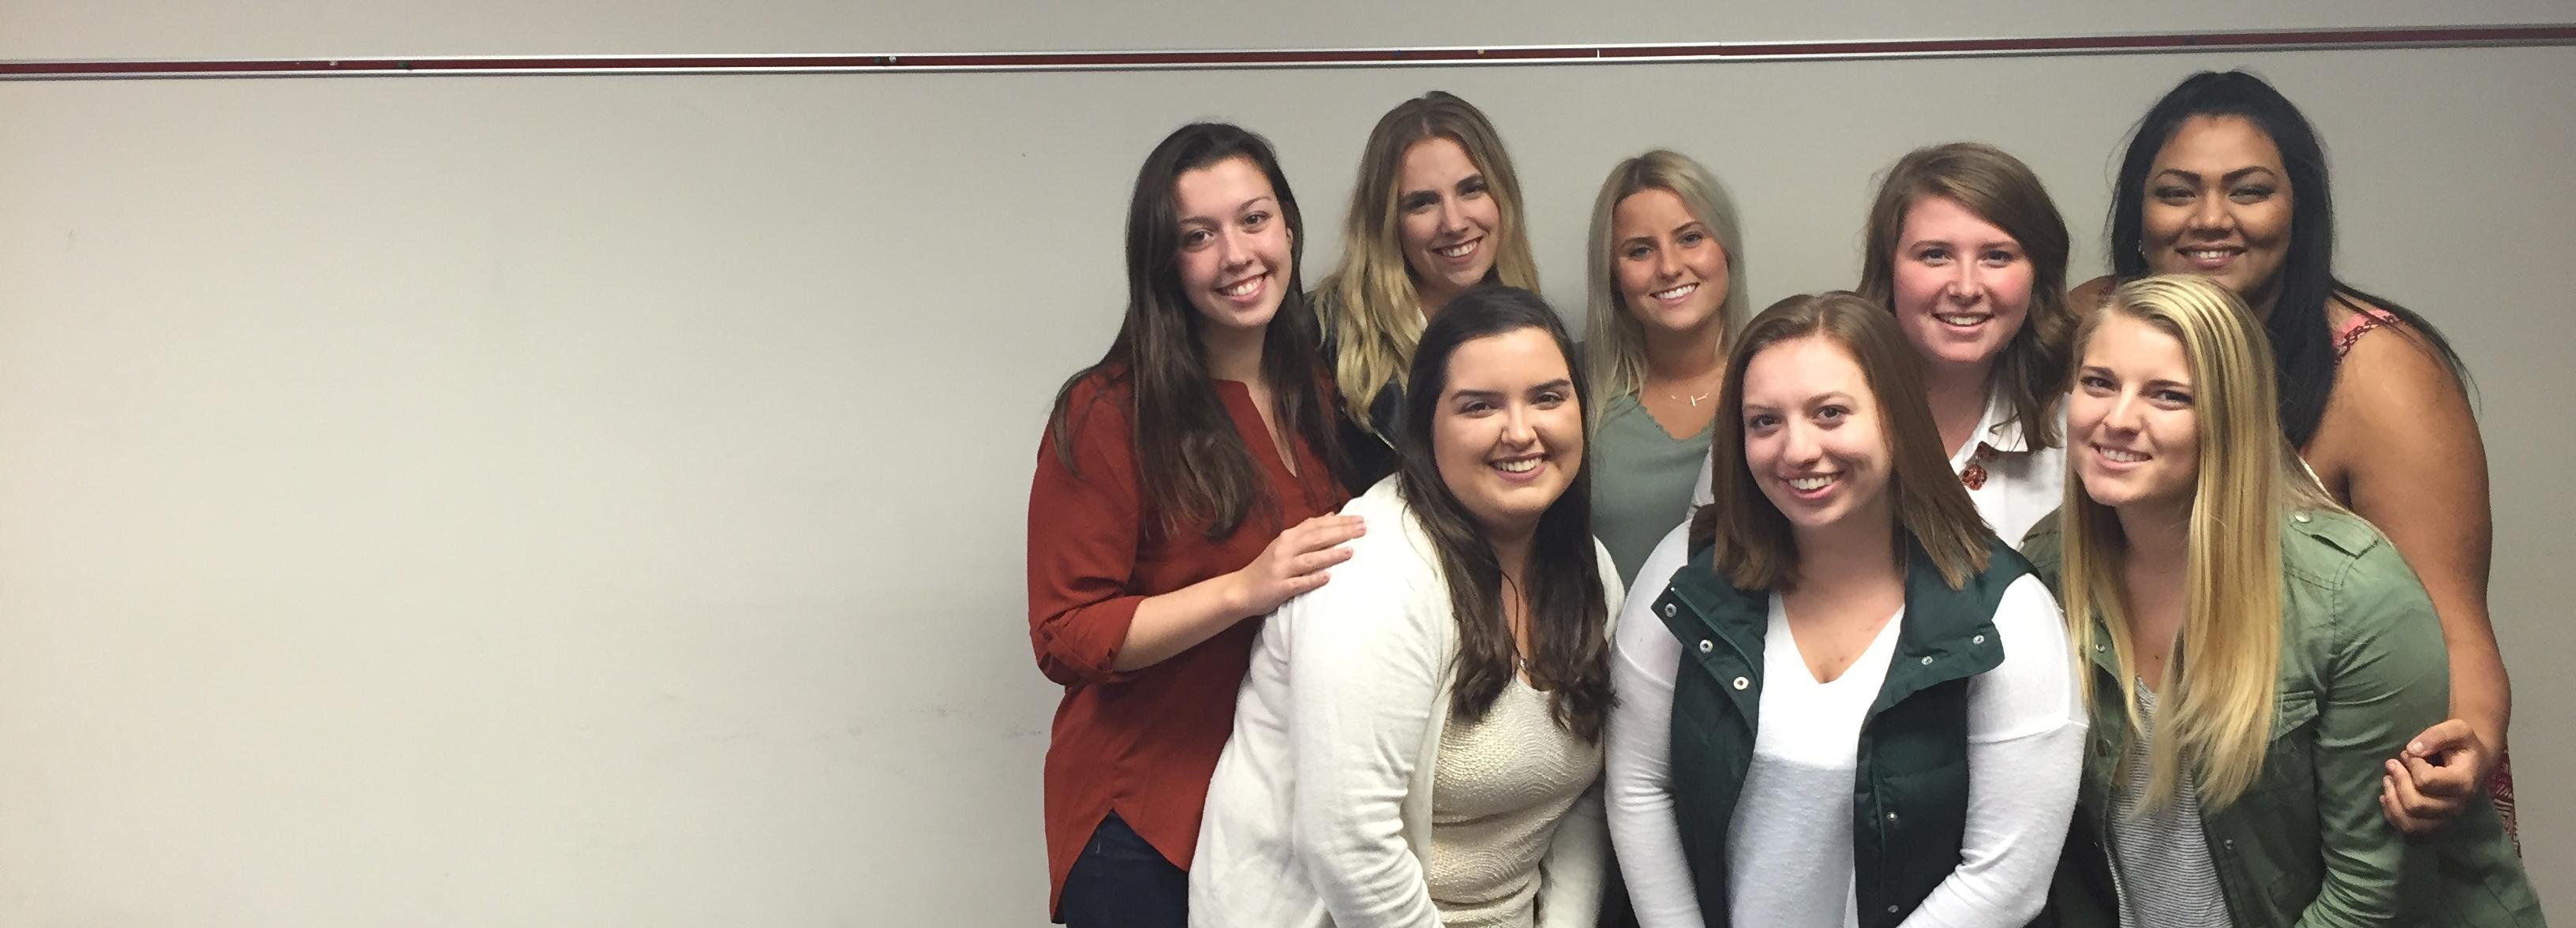 Panhellenic Association executive board at Temple